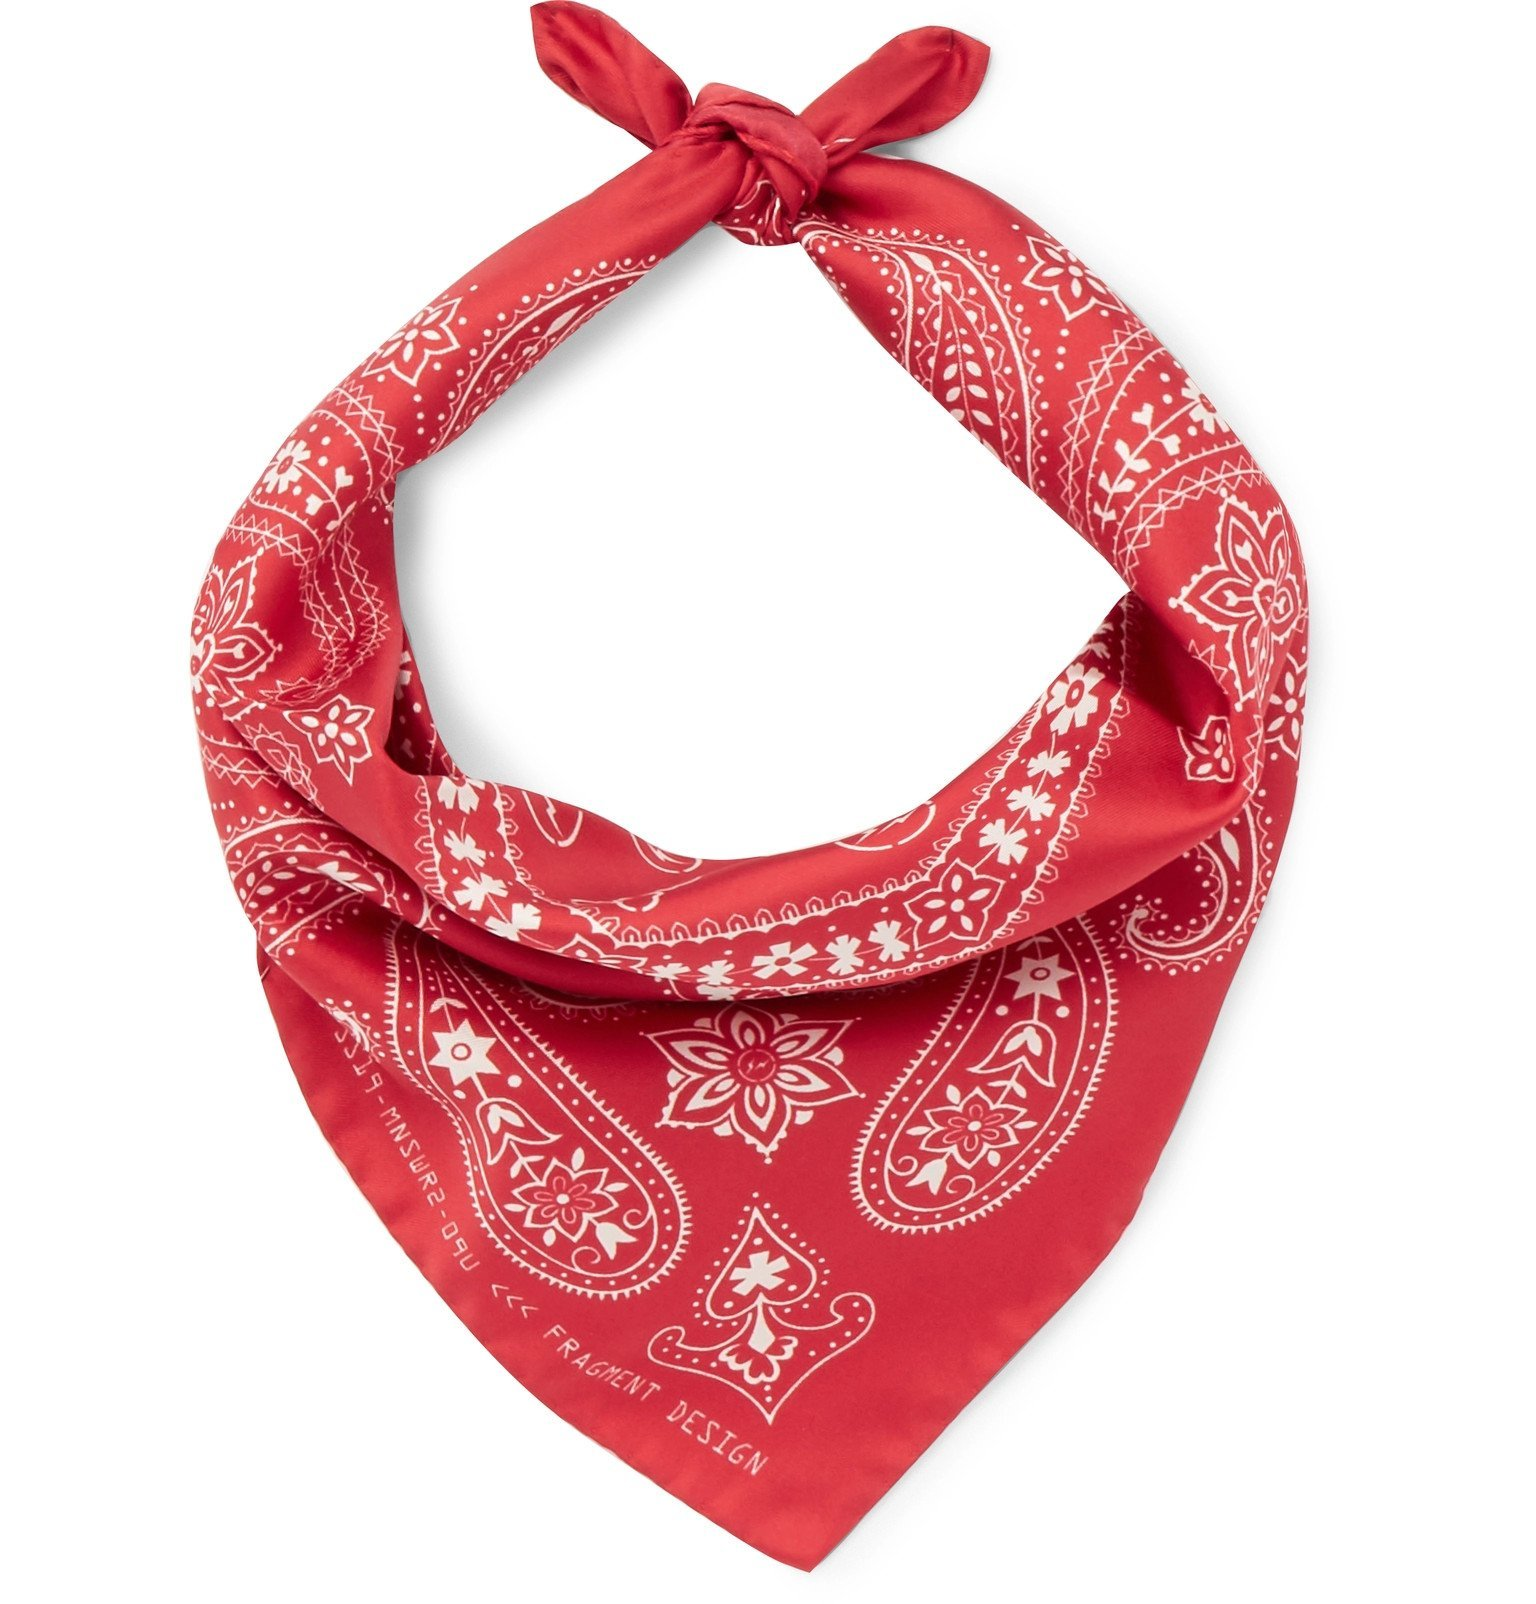 Photo: Moncler Genius - 7 Moncler Fragment Printed Silk-Twill Bandana - Red